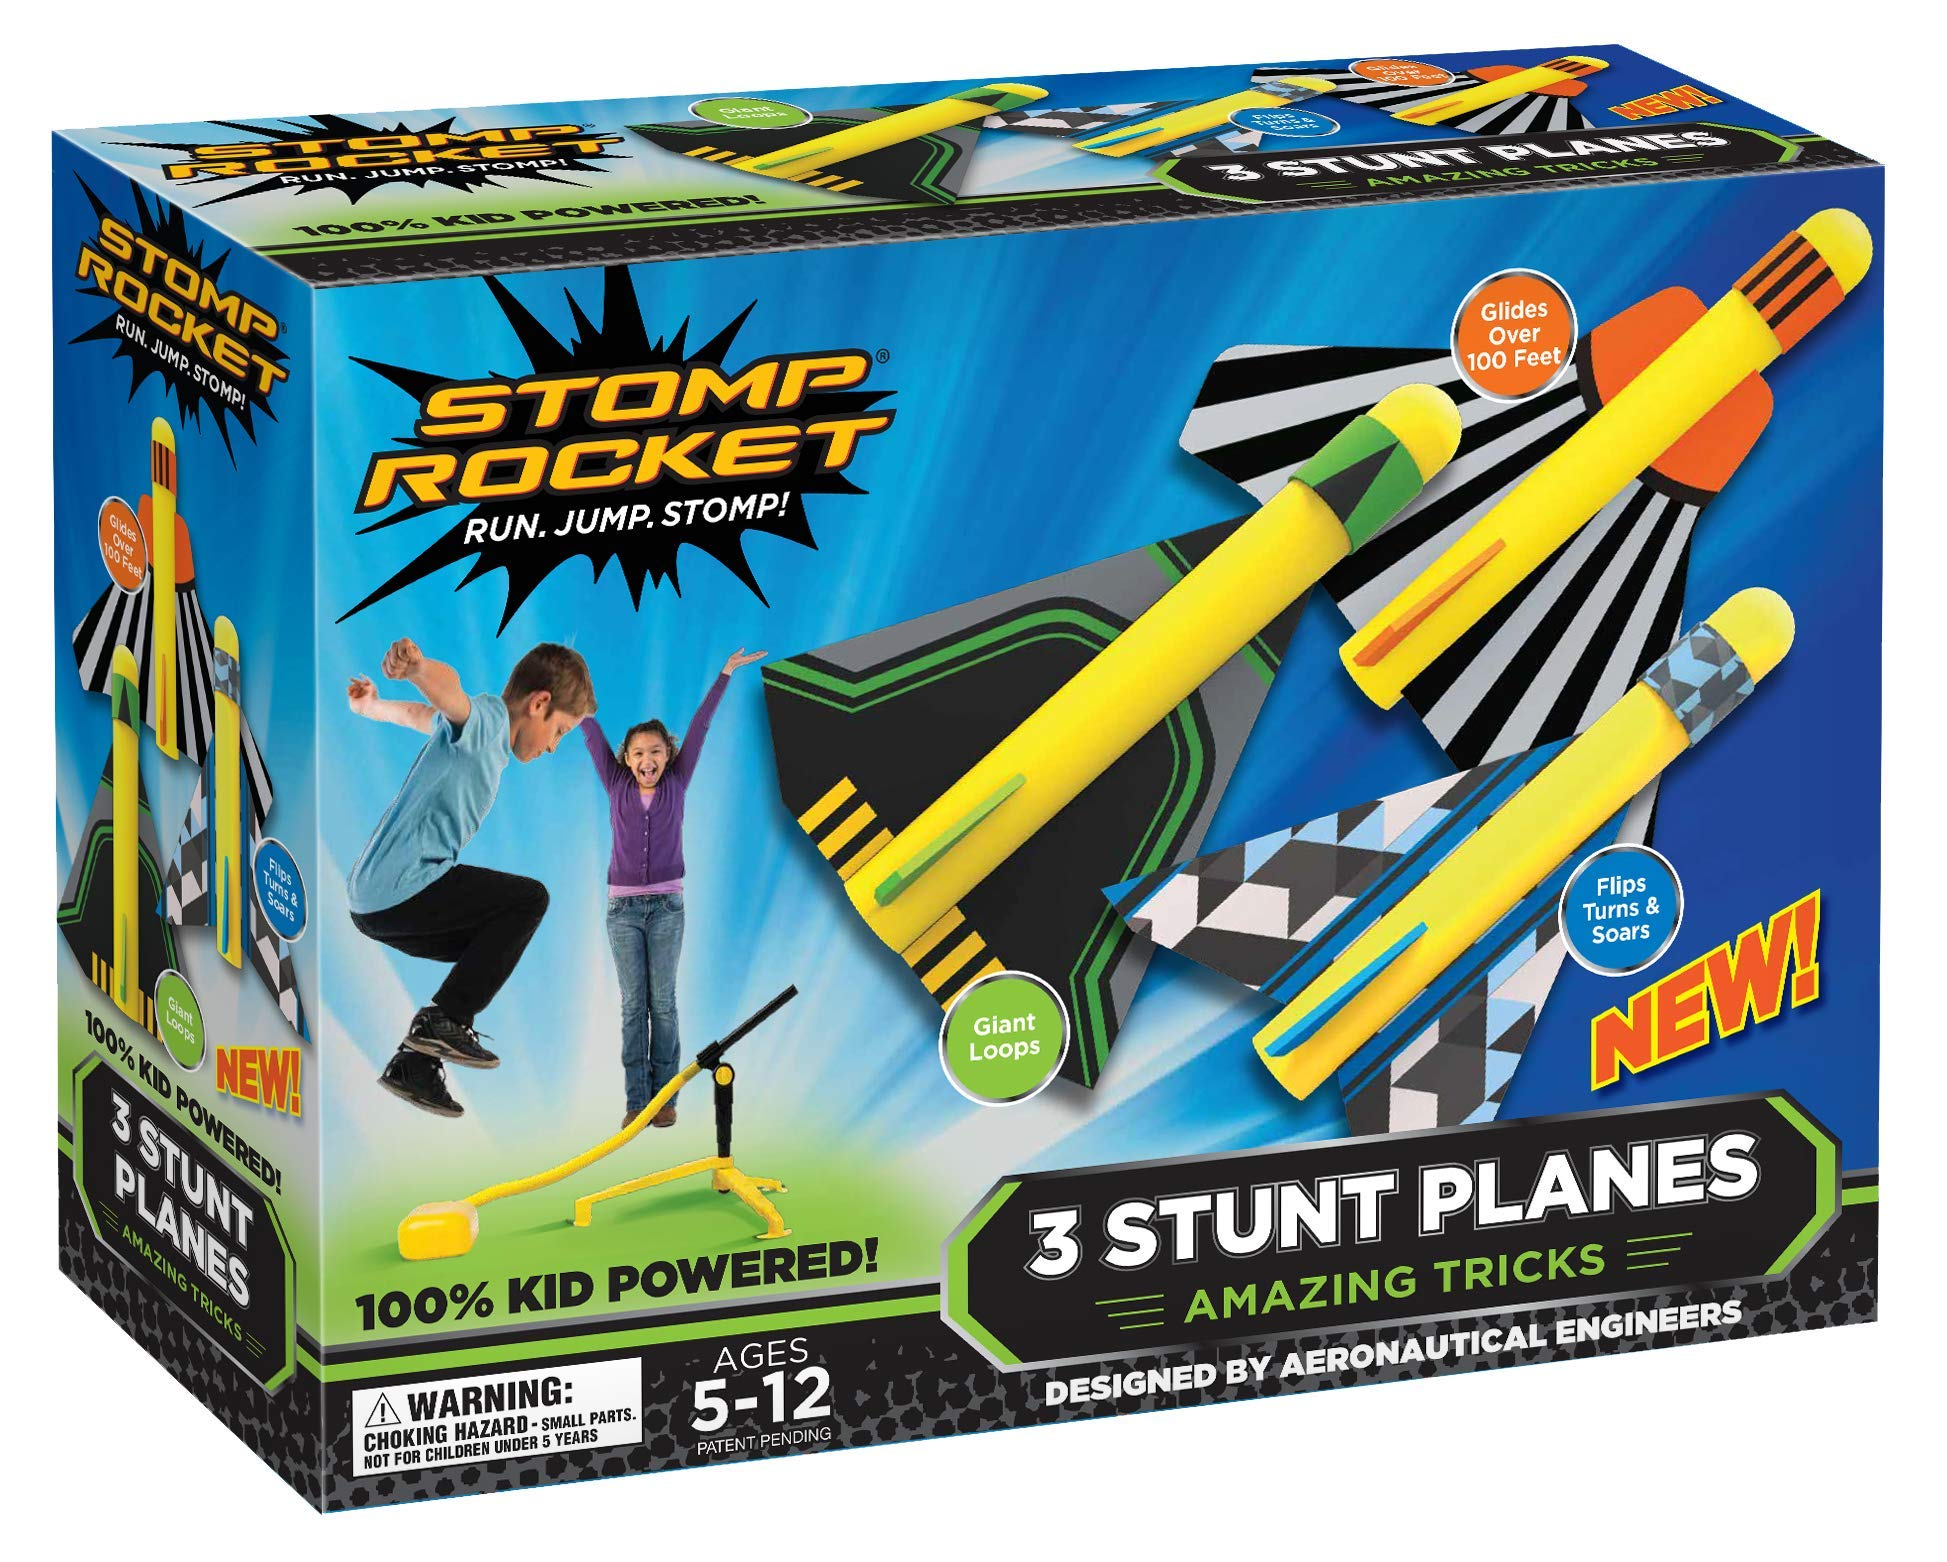 Stomp Rocket Stunt Planes - 3 Foam Plane Toys for Boys and Girls - Outdoor Rocket Toy Gift for Ages 5 (6, 7, 8) and Up (Renewed) by Stomp Rocket